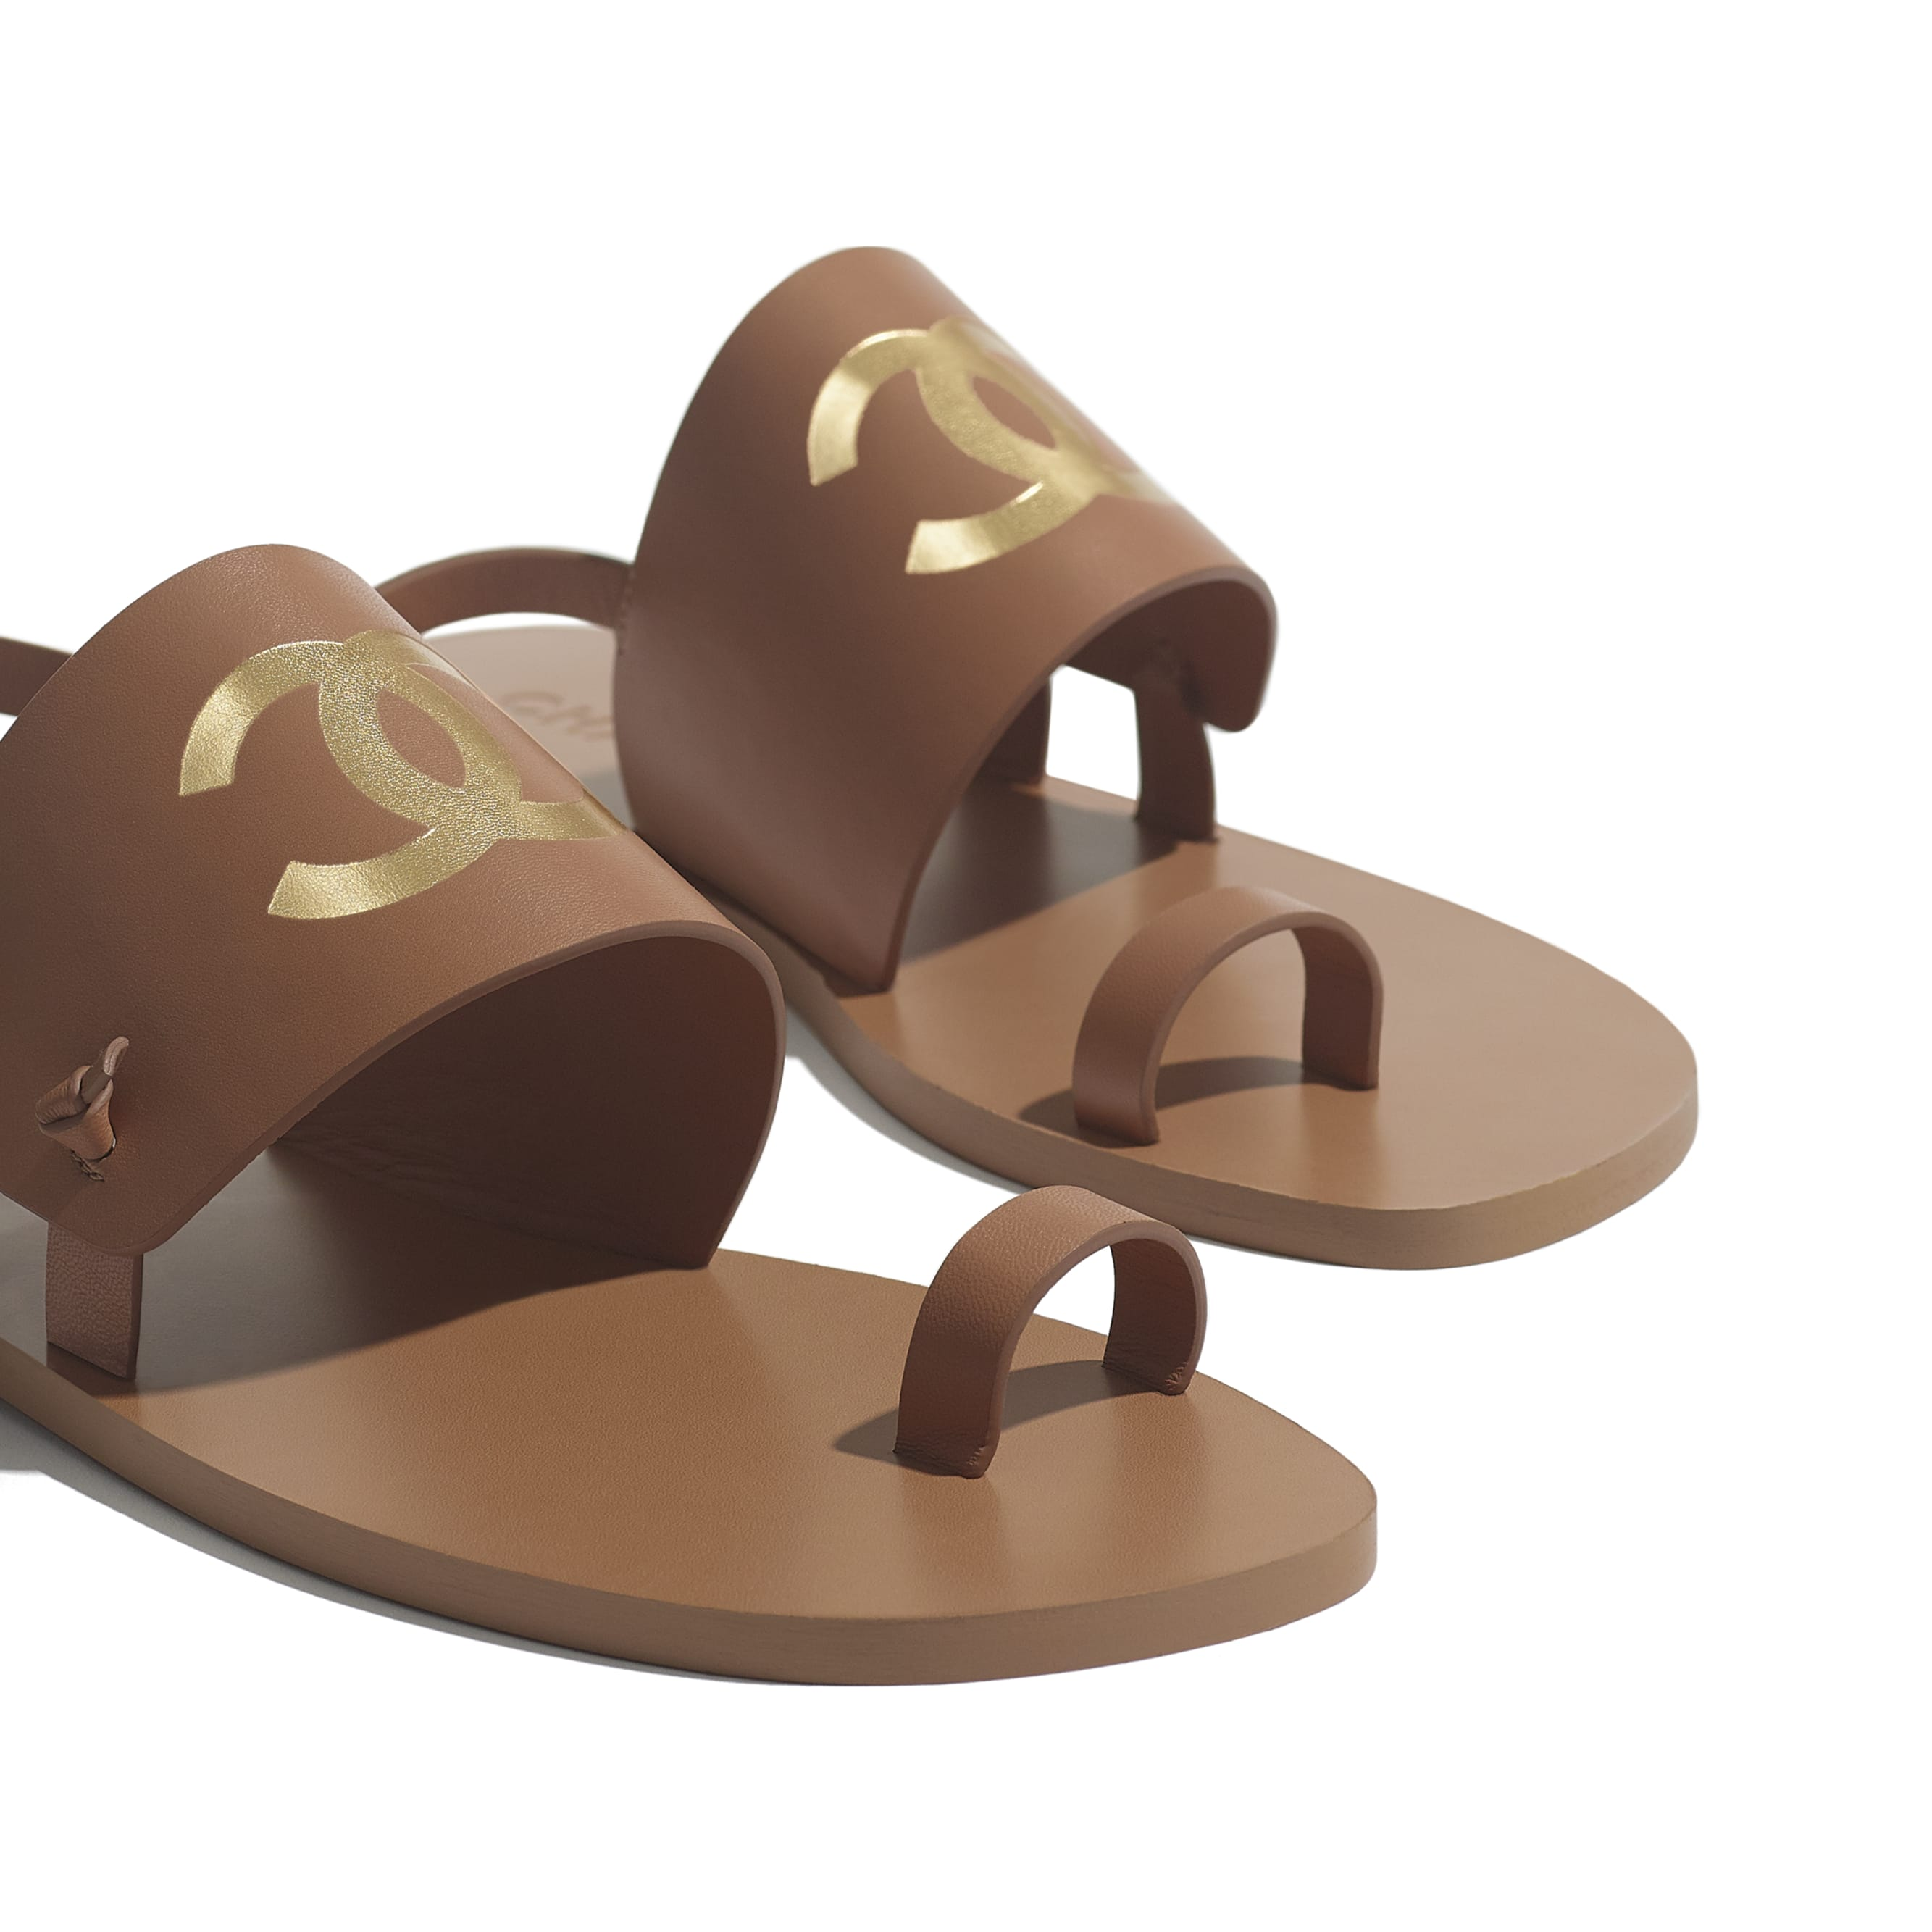 Sandals - Brown - Goatskin - CHANEL - Extra view - see standard sized version